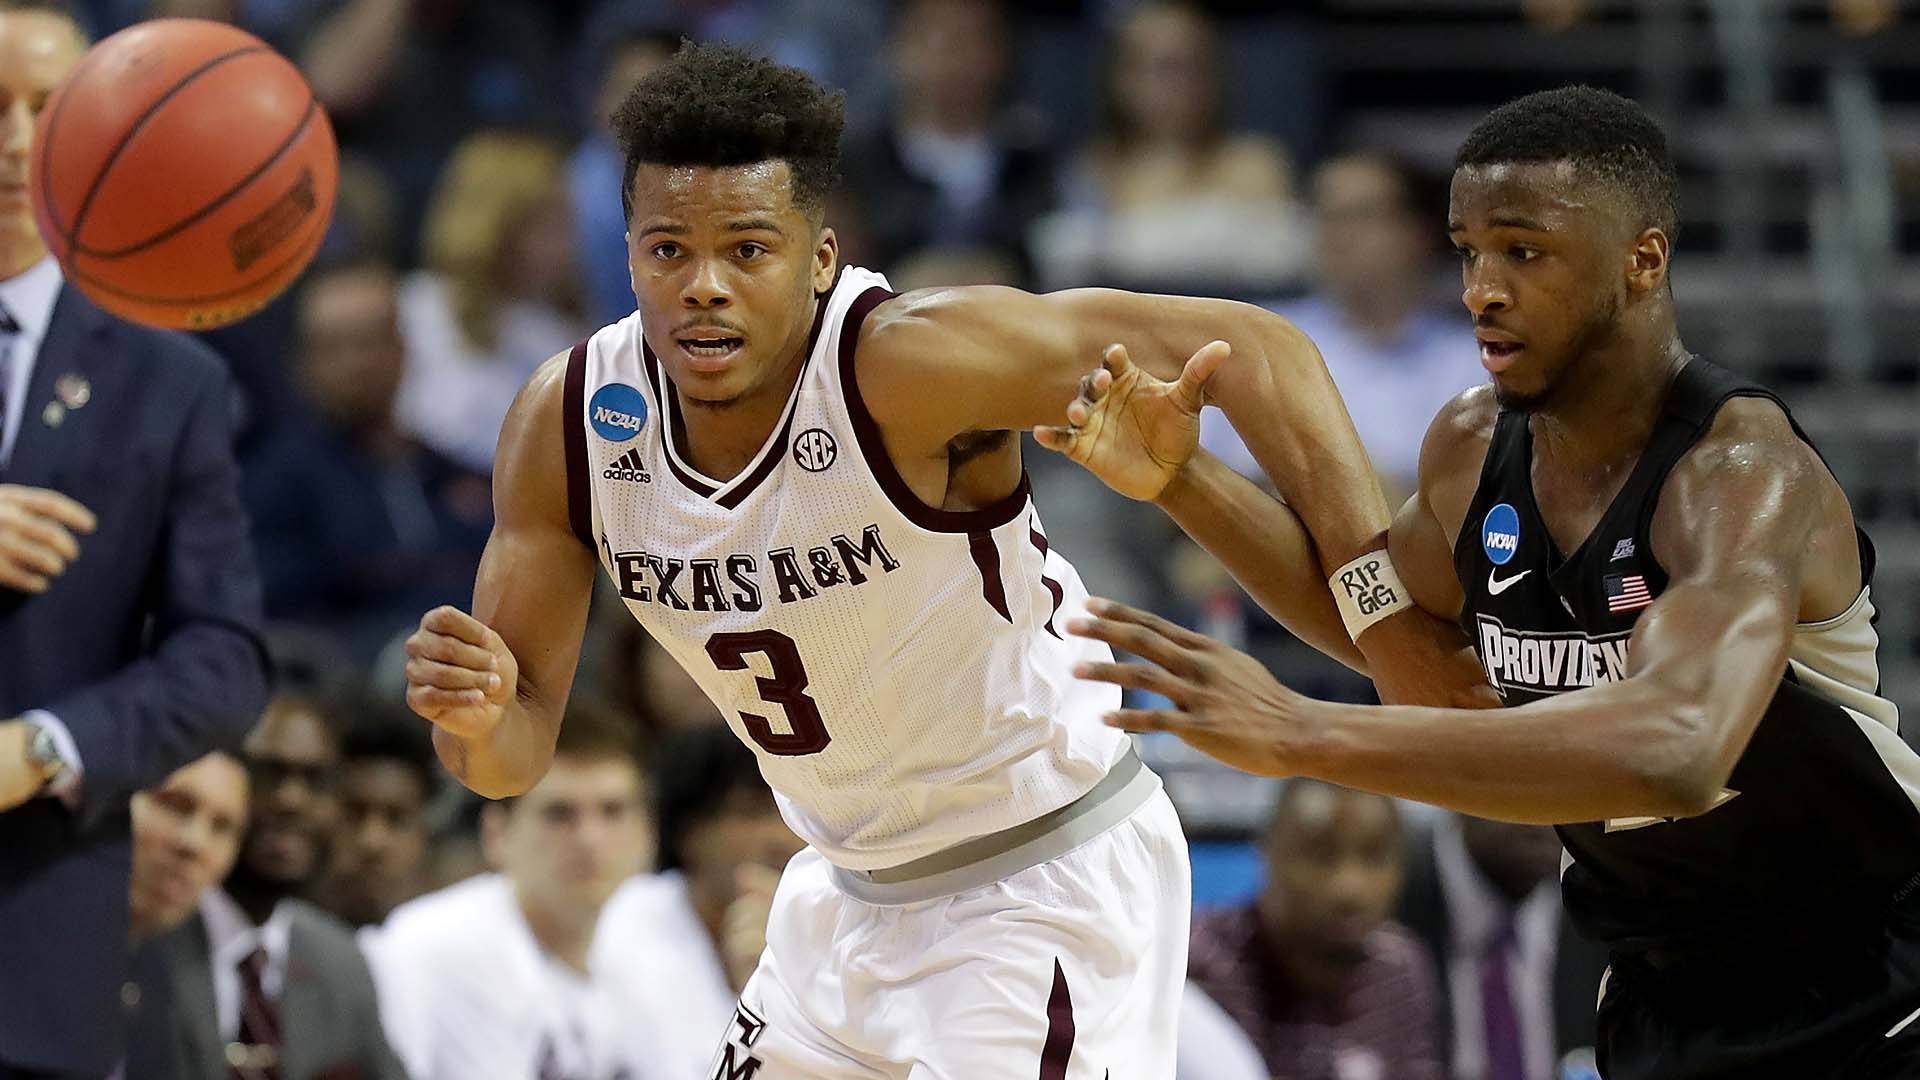 Texas A&M vs. North Carolina - 3/18/18 College Basketball Pick, Odds, and Prediction